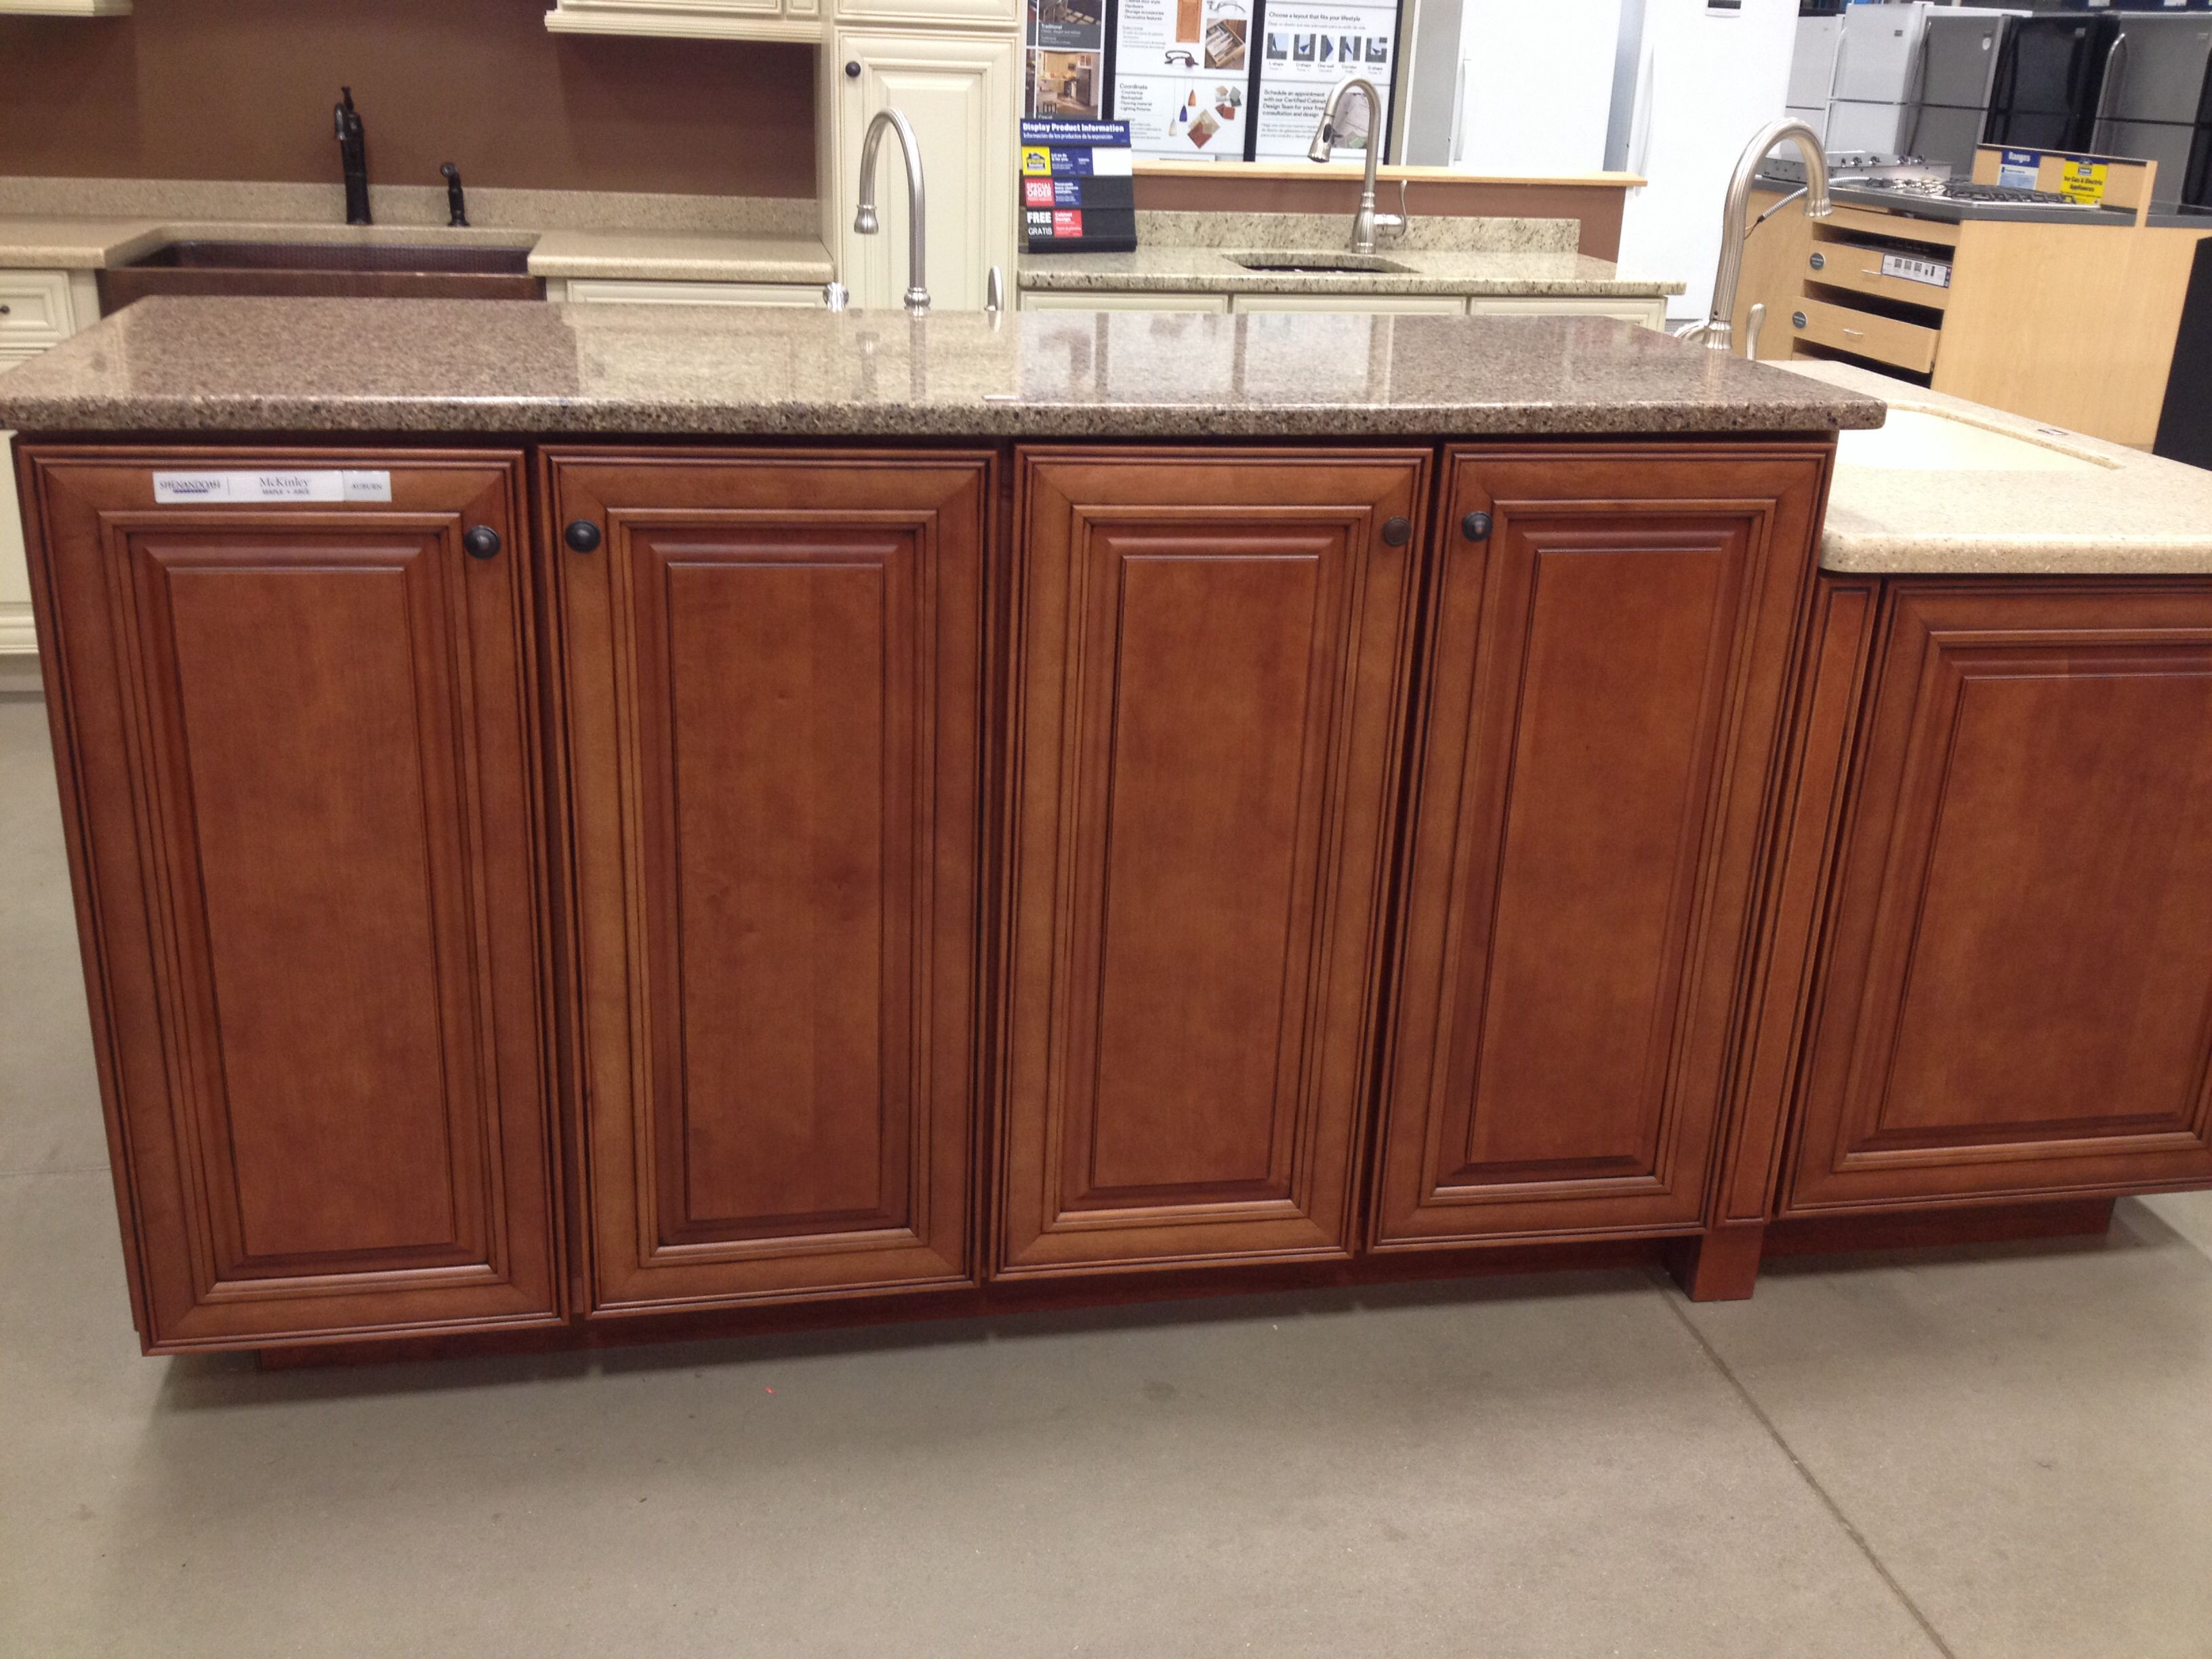 My New Cabinets Shenandoah Cabinets Mckinley Maple In